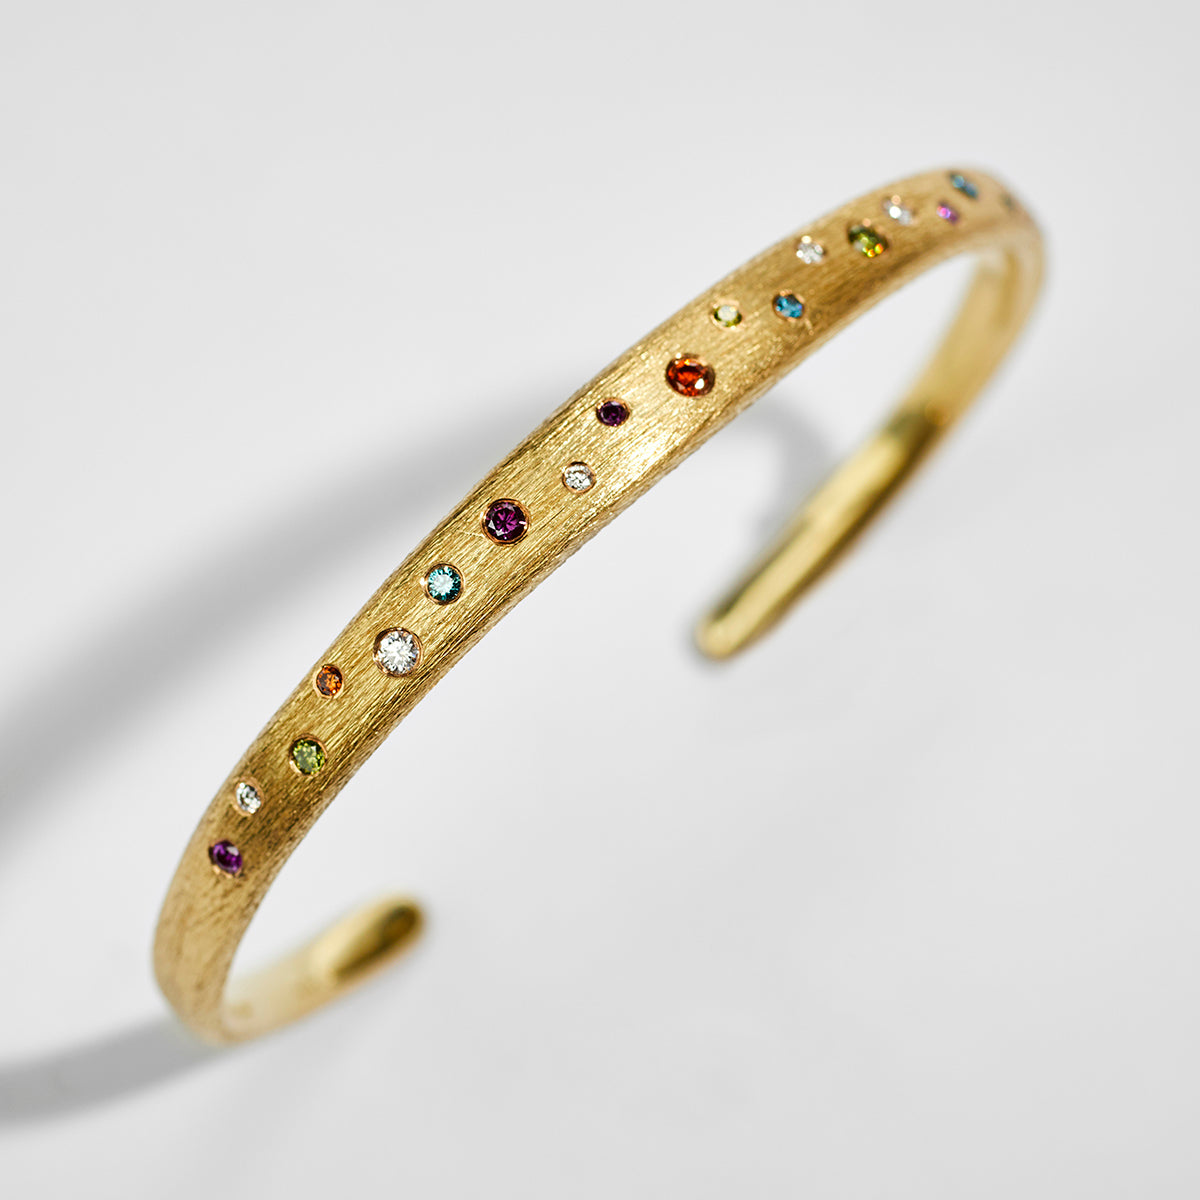 Incline Gold Bangle